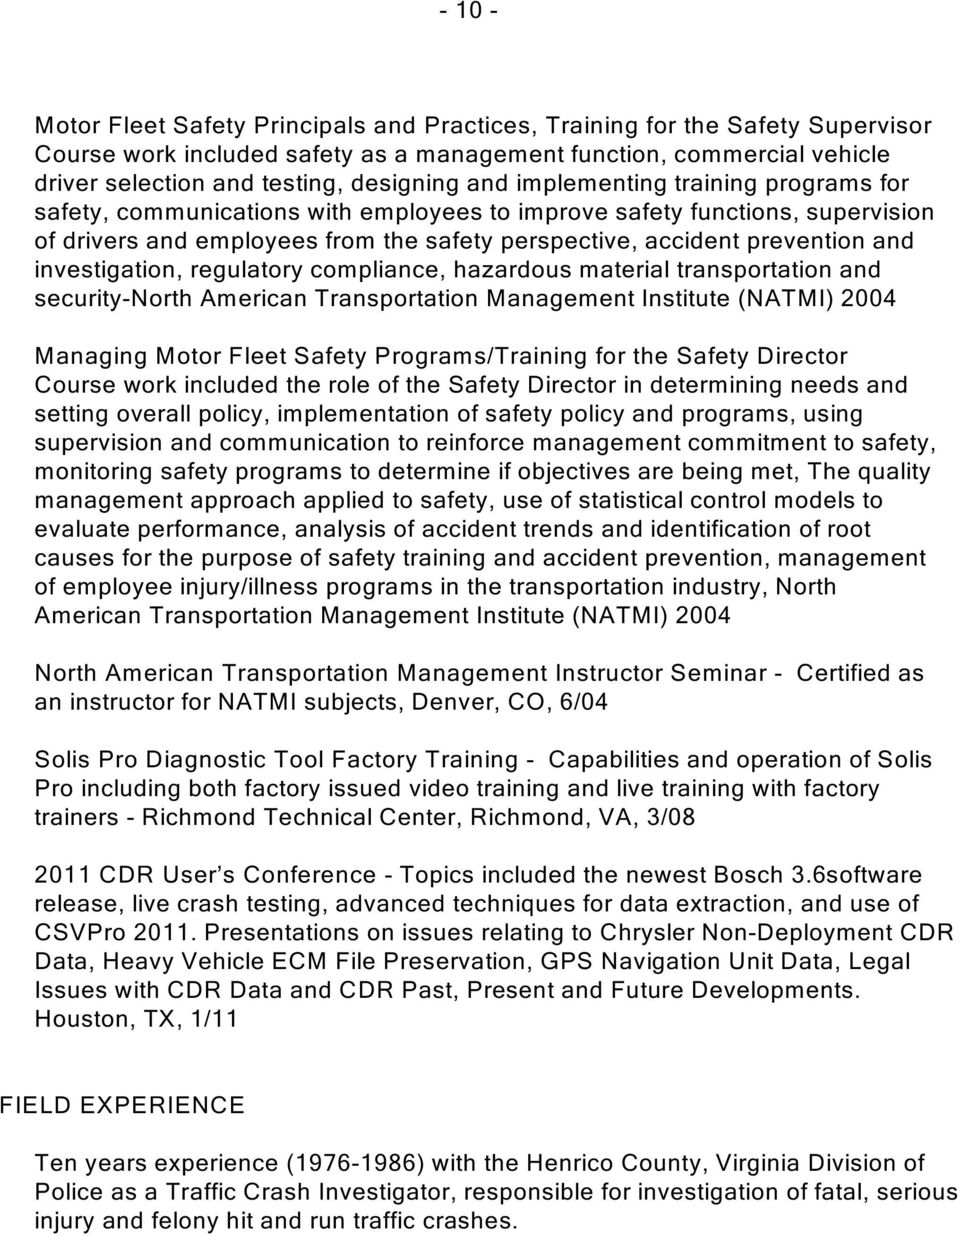 investigation, regulatory compliance, hazardous material transportation and security-north American Transportation Management Institute (NATMI) 2004 Managing Motor Fleet Safety Programs/Training for